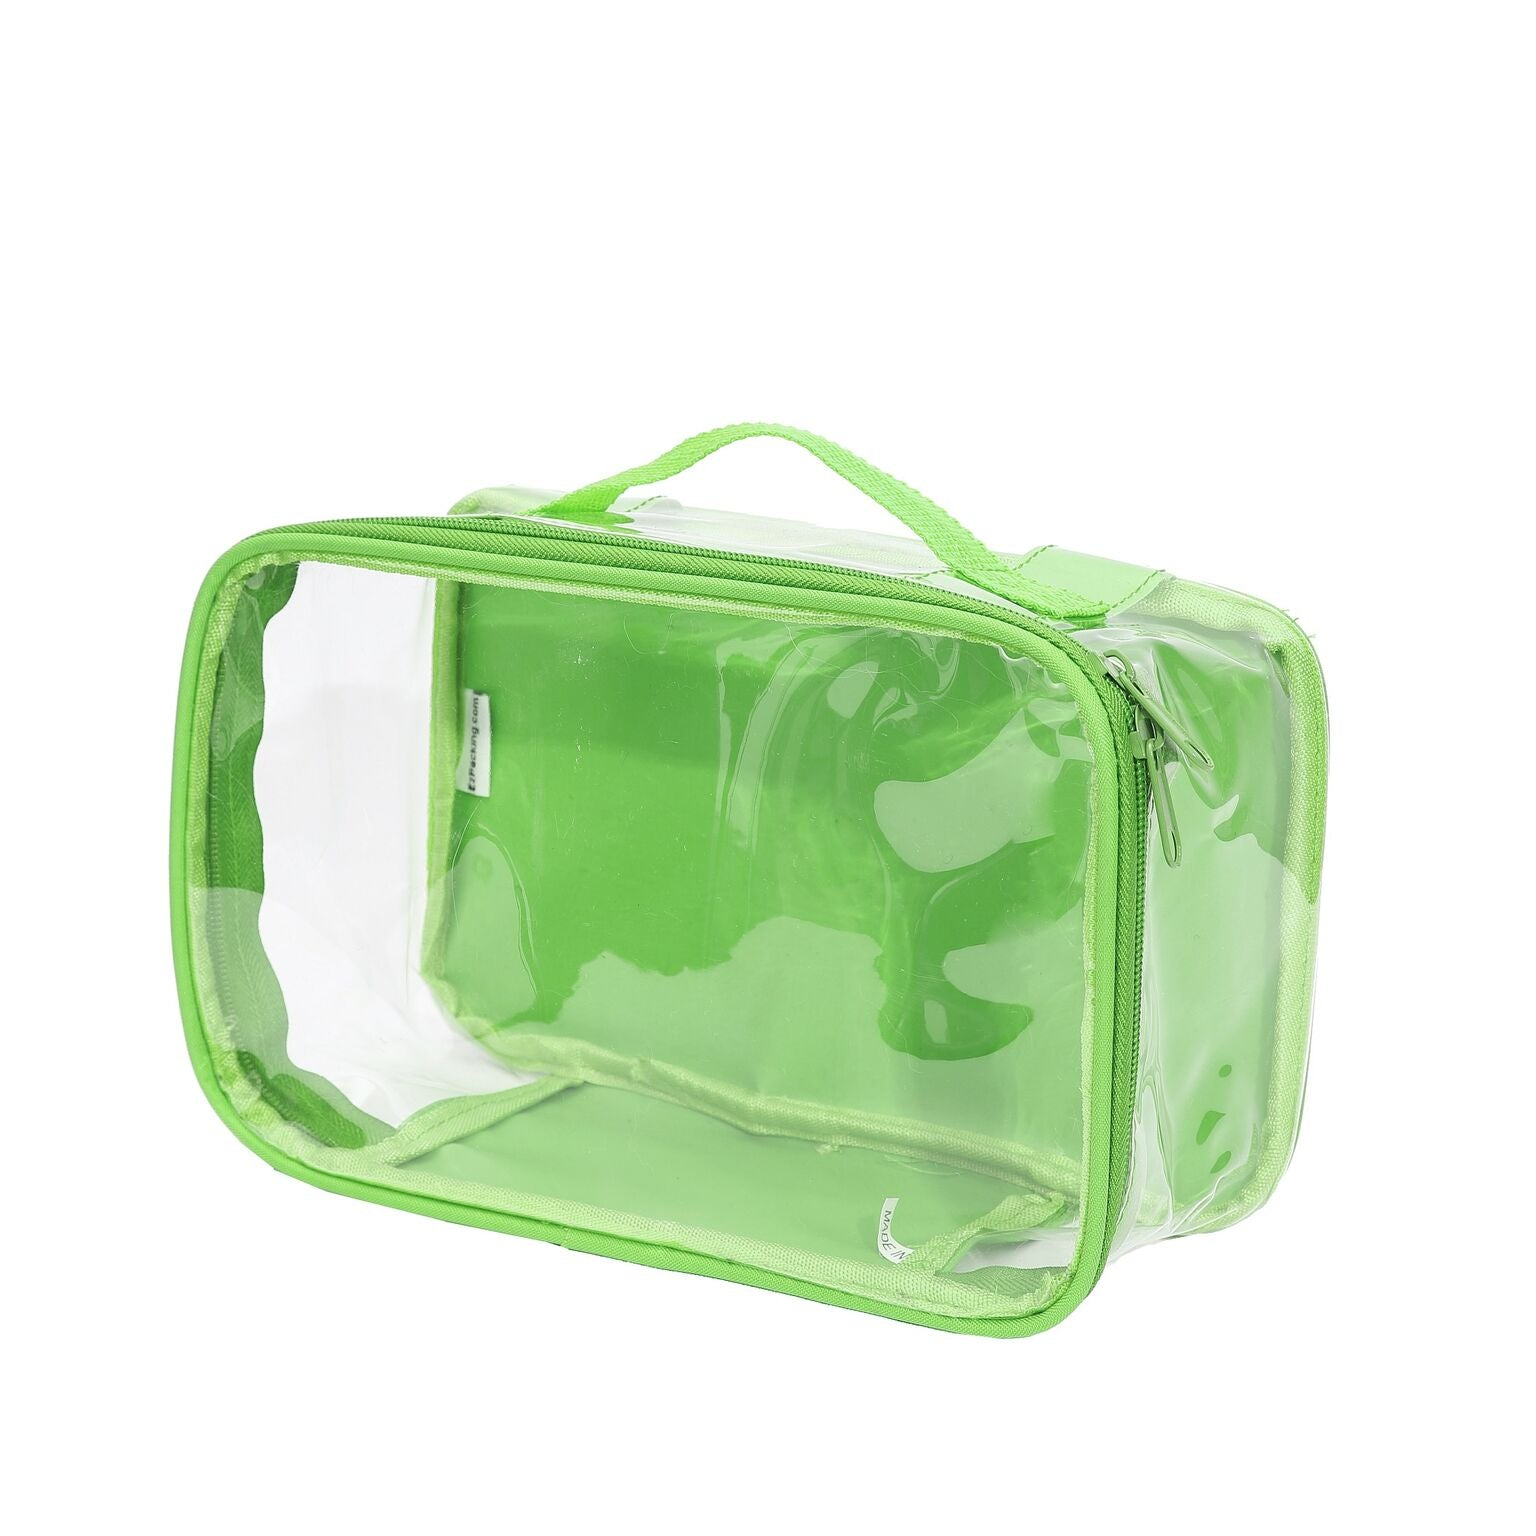 green small packing cube